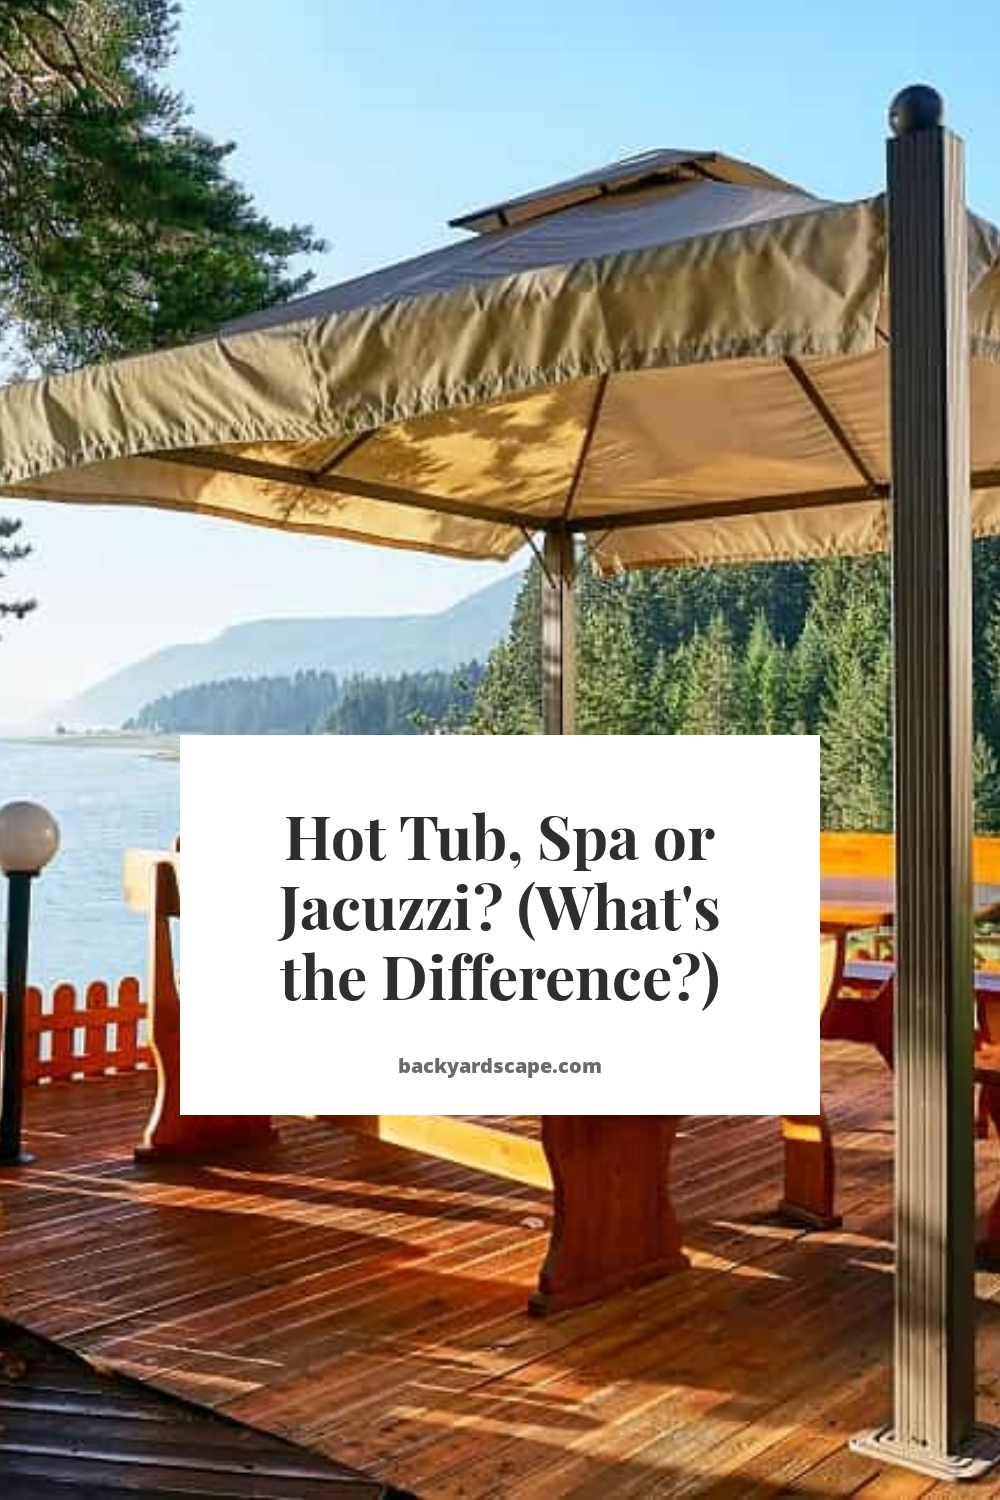 Hot Tub, Spa or Jacuzzi? (What's the Difference?)